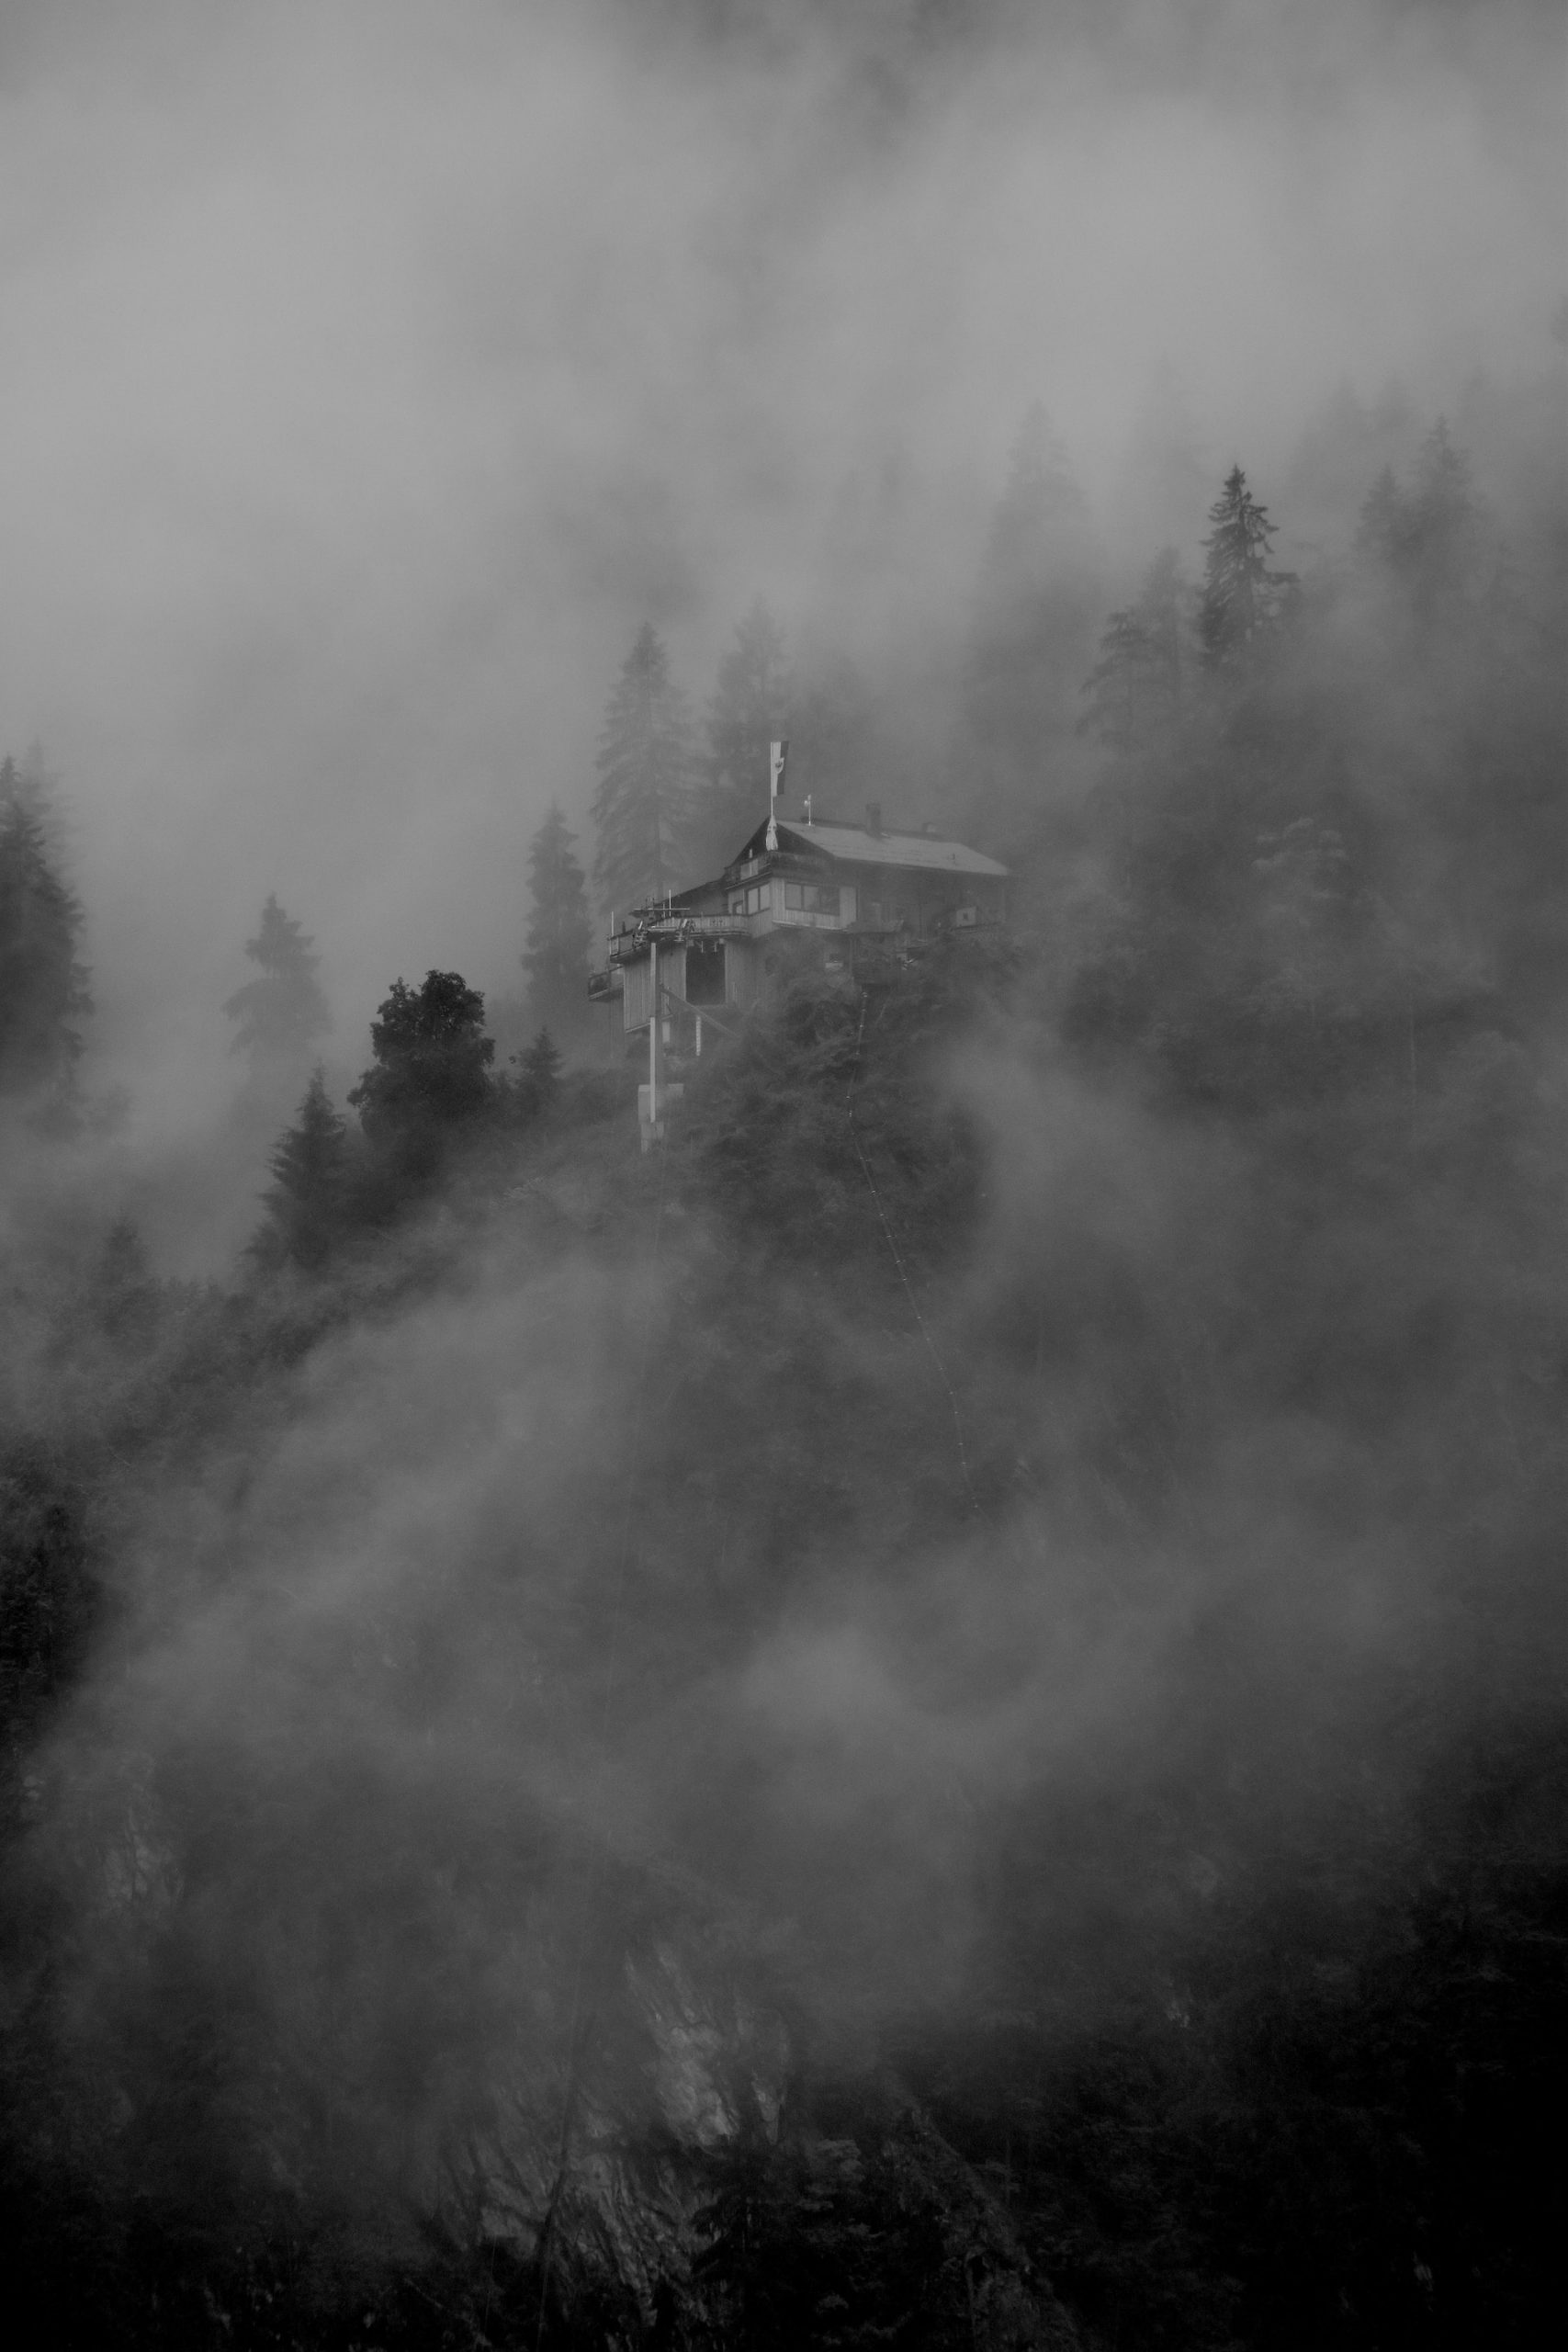 The image shows a house in a forest- like terrain shrouded by a mysterious fog. It suits the mood of the record